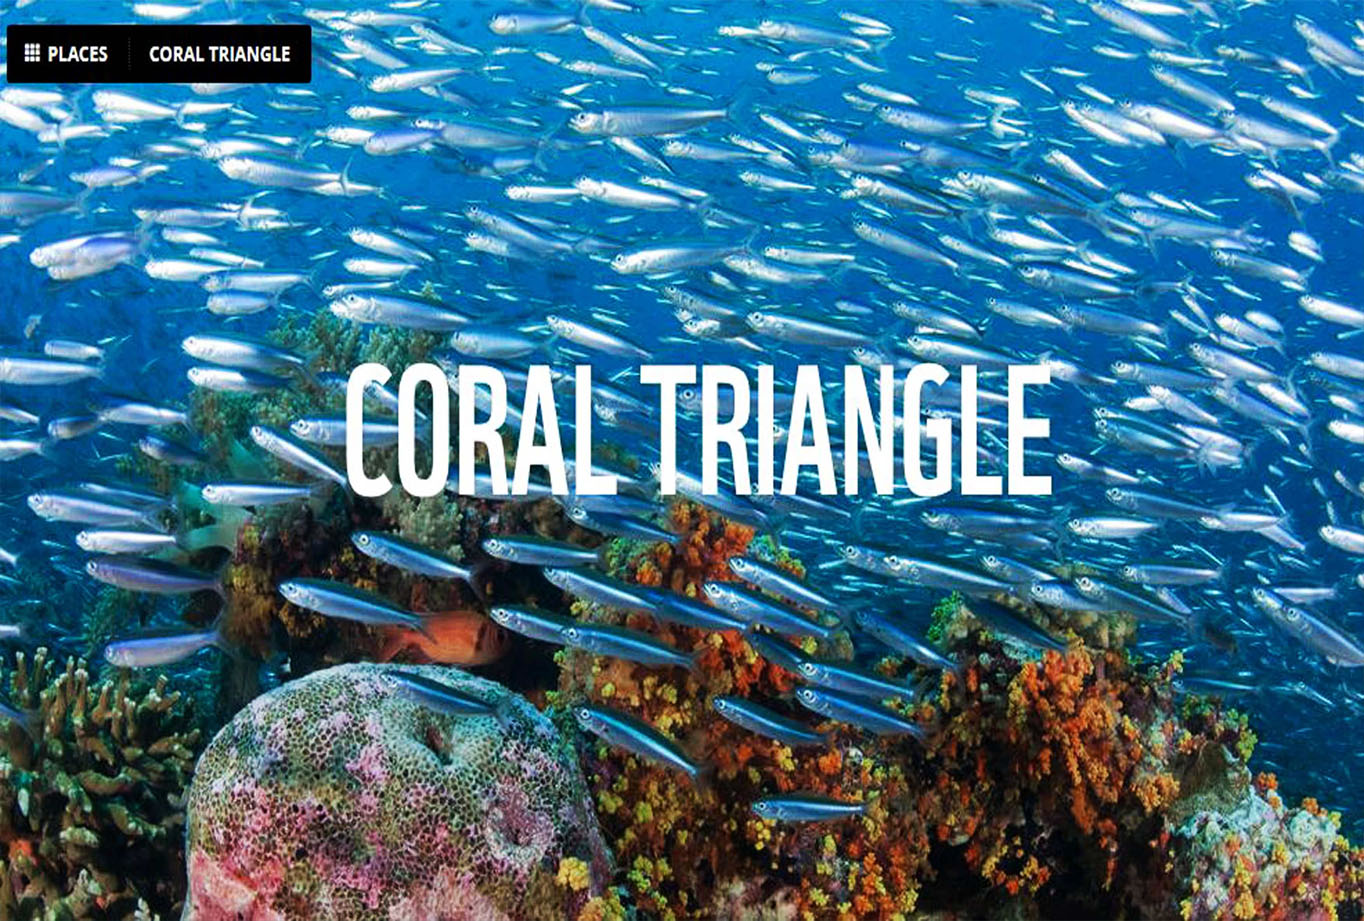 The Coral Triange